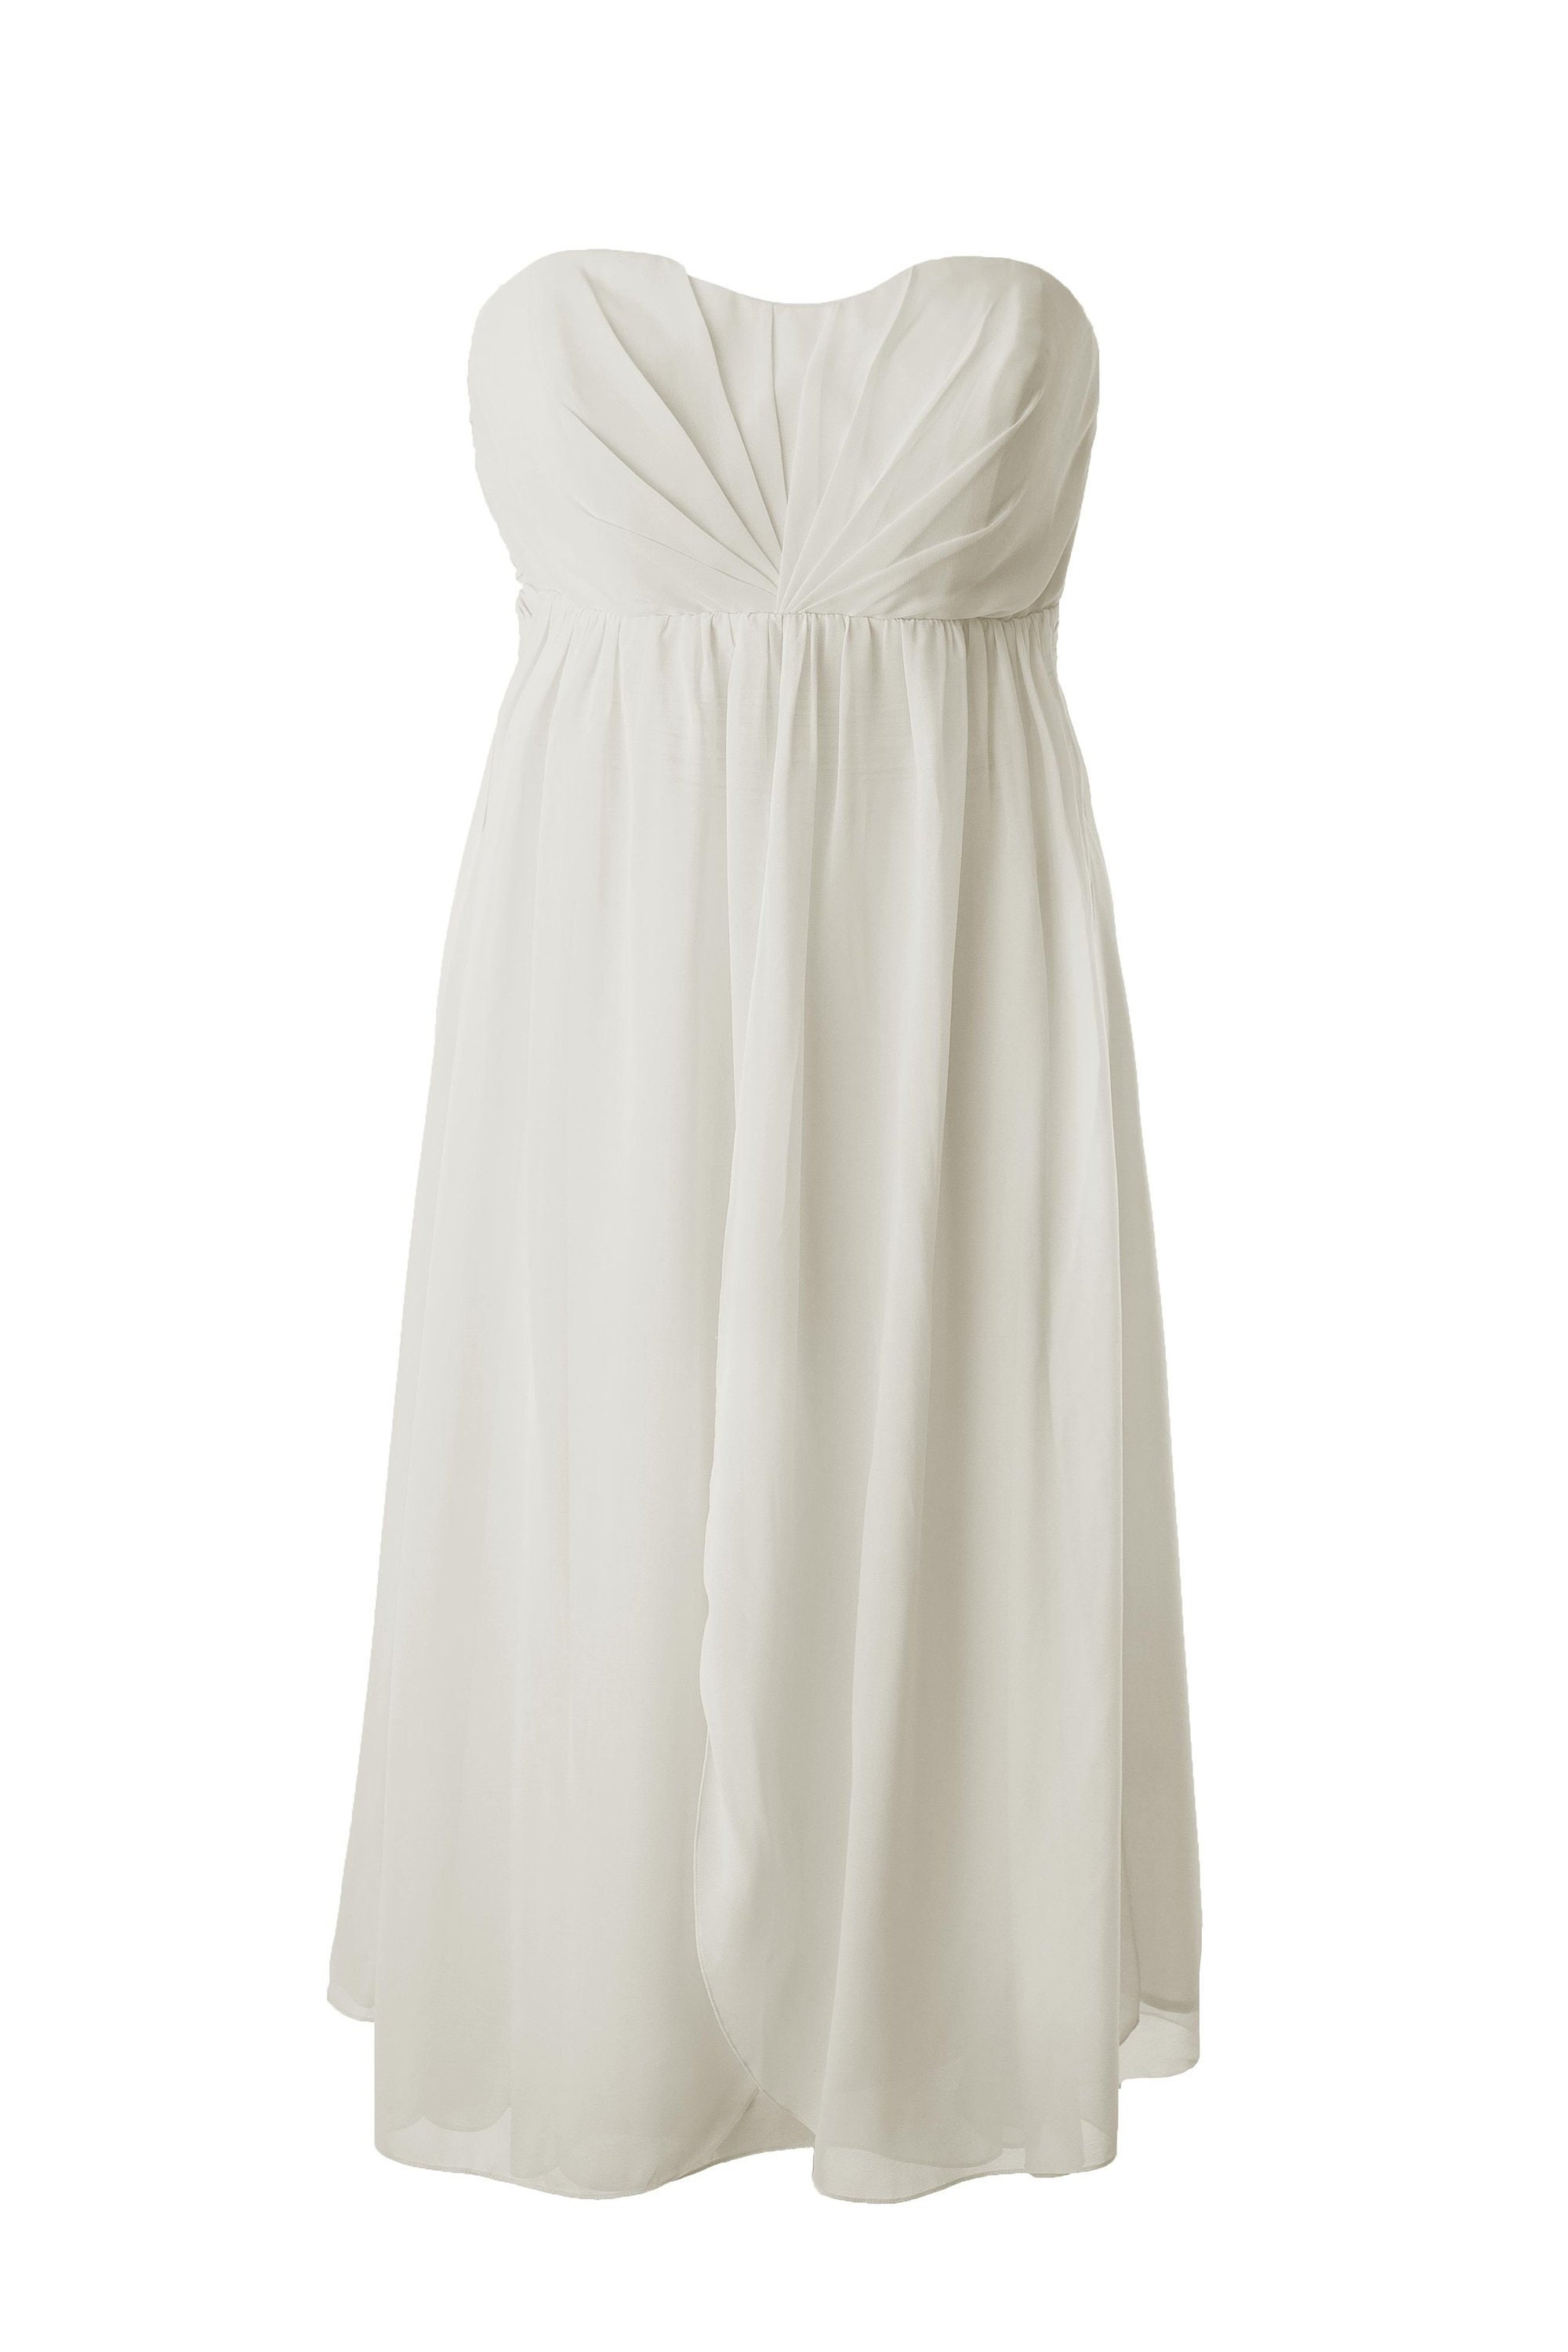 f2389ab8c87 Short Cream Multiway Convertible Bridesmaid   Prom Dress by